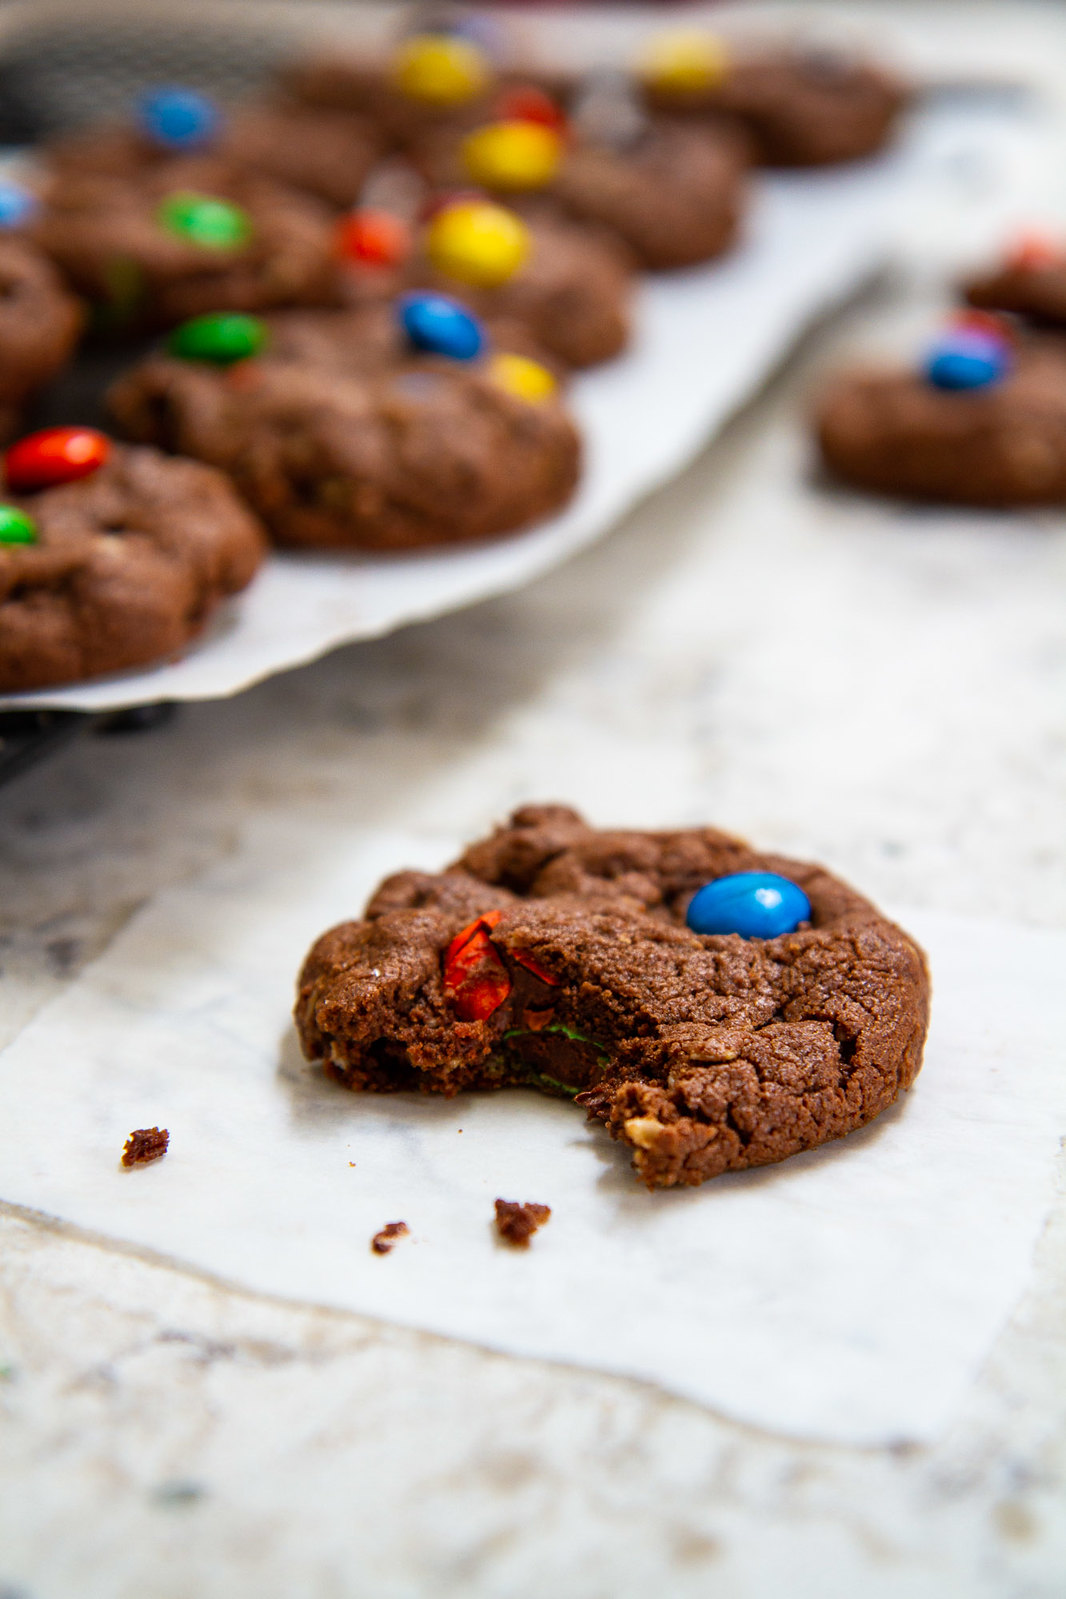 Brownie Monster Cookies -- Deliciously soft and fudgy homemade cookies with classic Monster cookie flavors, like peanut butter, M&Ms and oats! @girlversusdough #girlversusdough #browniecookies #easycookierecipe #dessertrecipe